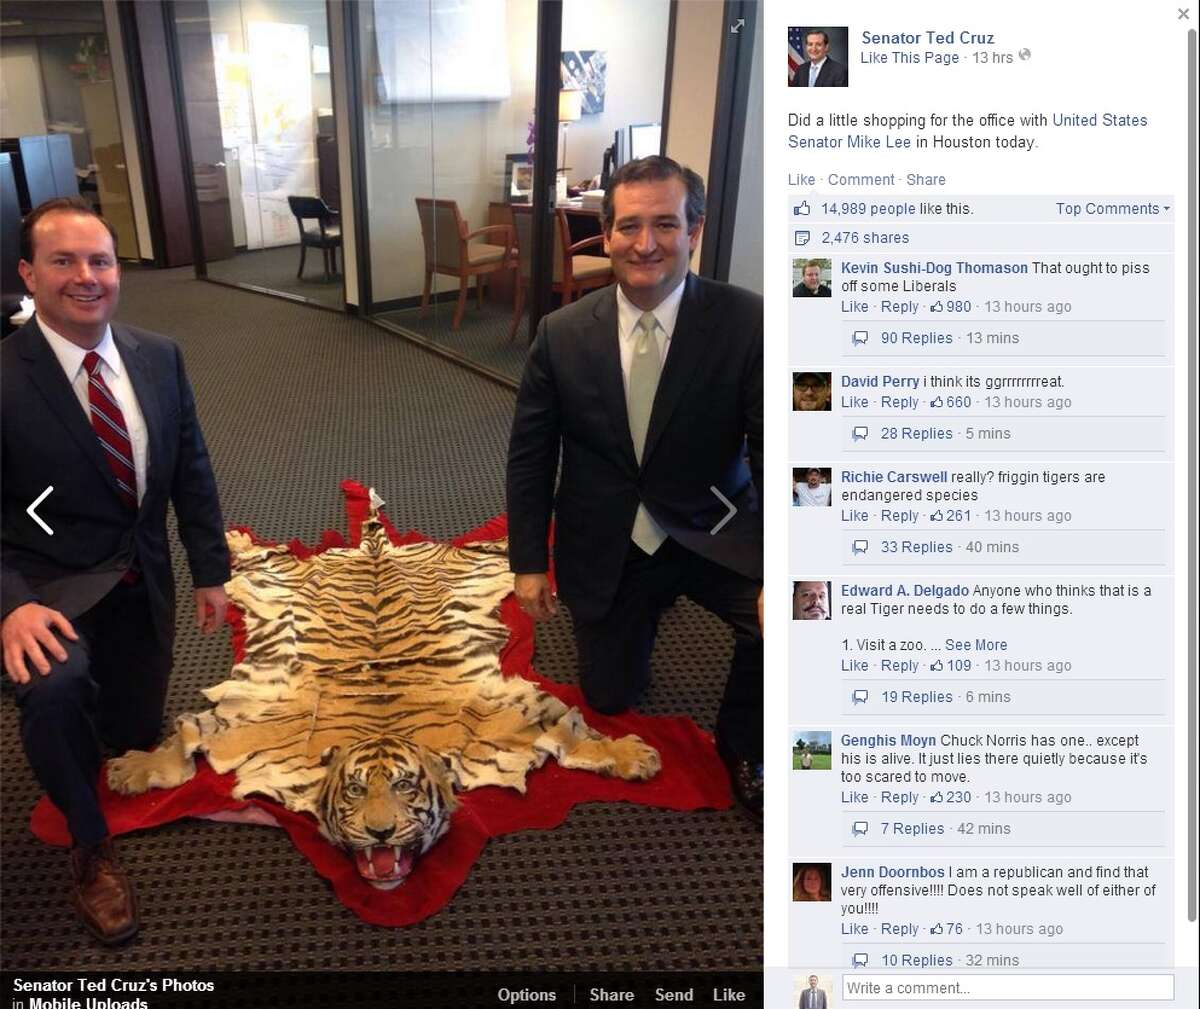 U.S. Sen. Ted Cruz caused a stir with a photo posted of him next to a rug that appears to be made of a tiger's pelt.